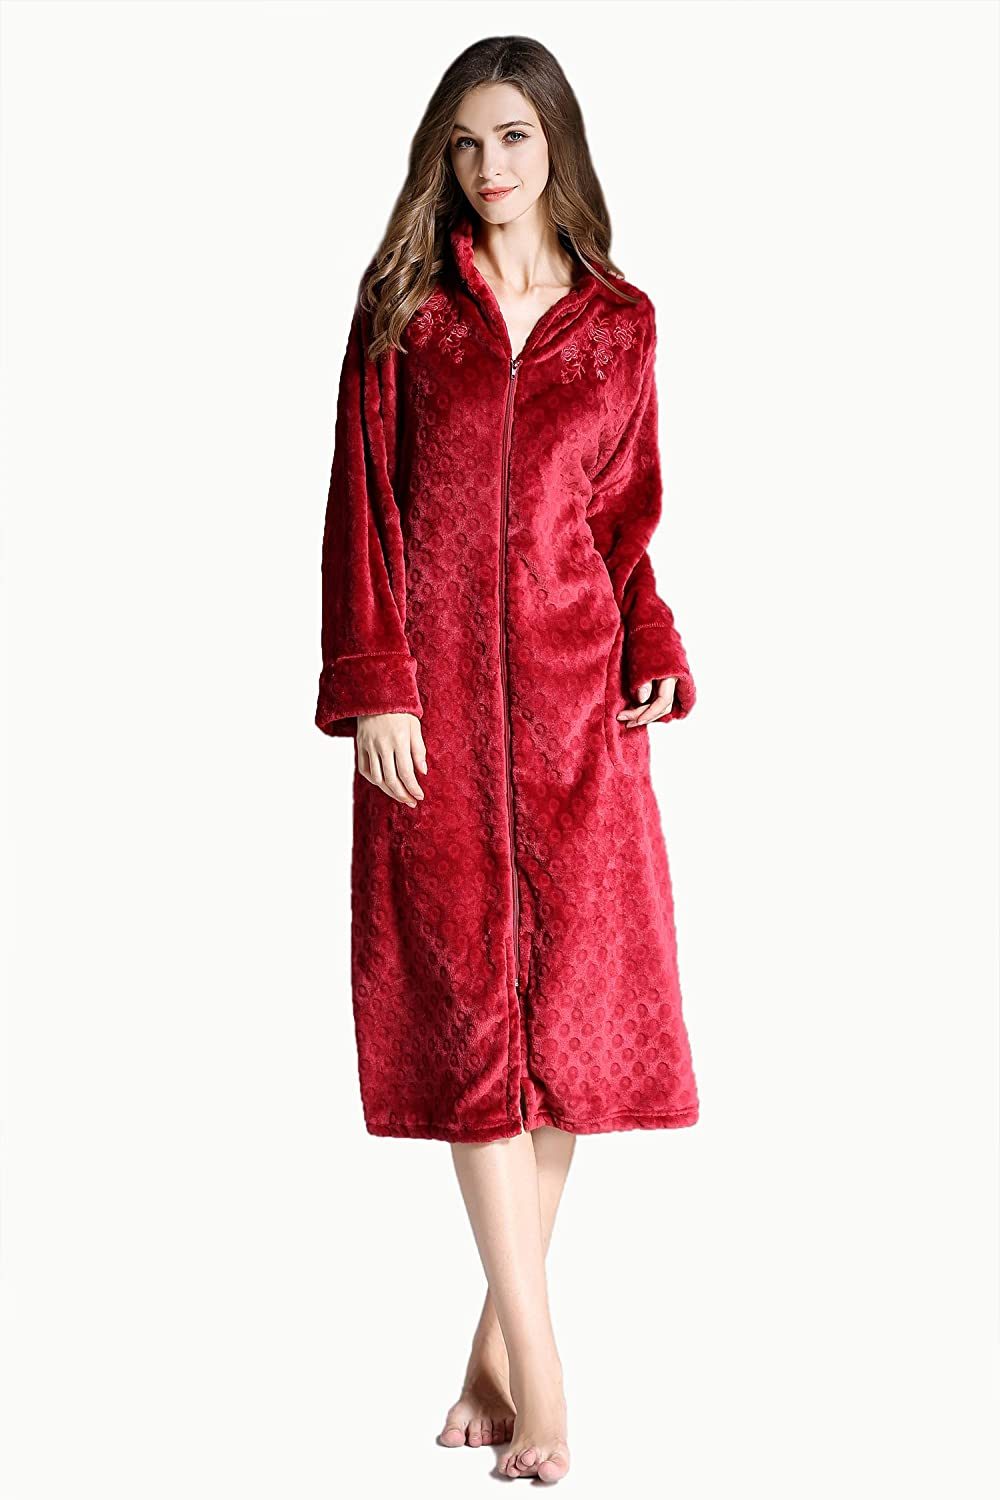 YOUAREFACNY Women's Plush Soft Warm Fleece Robe Pajama Front Zip Embroidery NightRobe Bathrobe